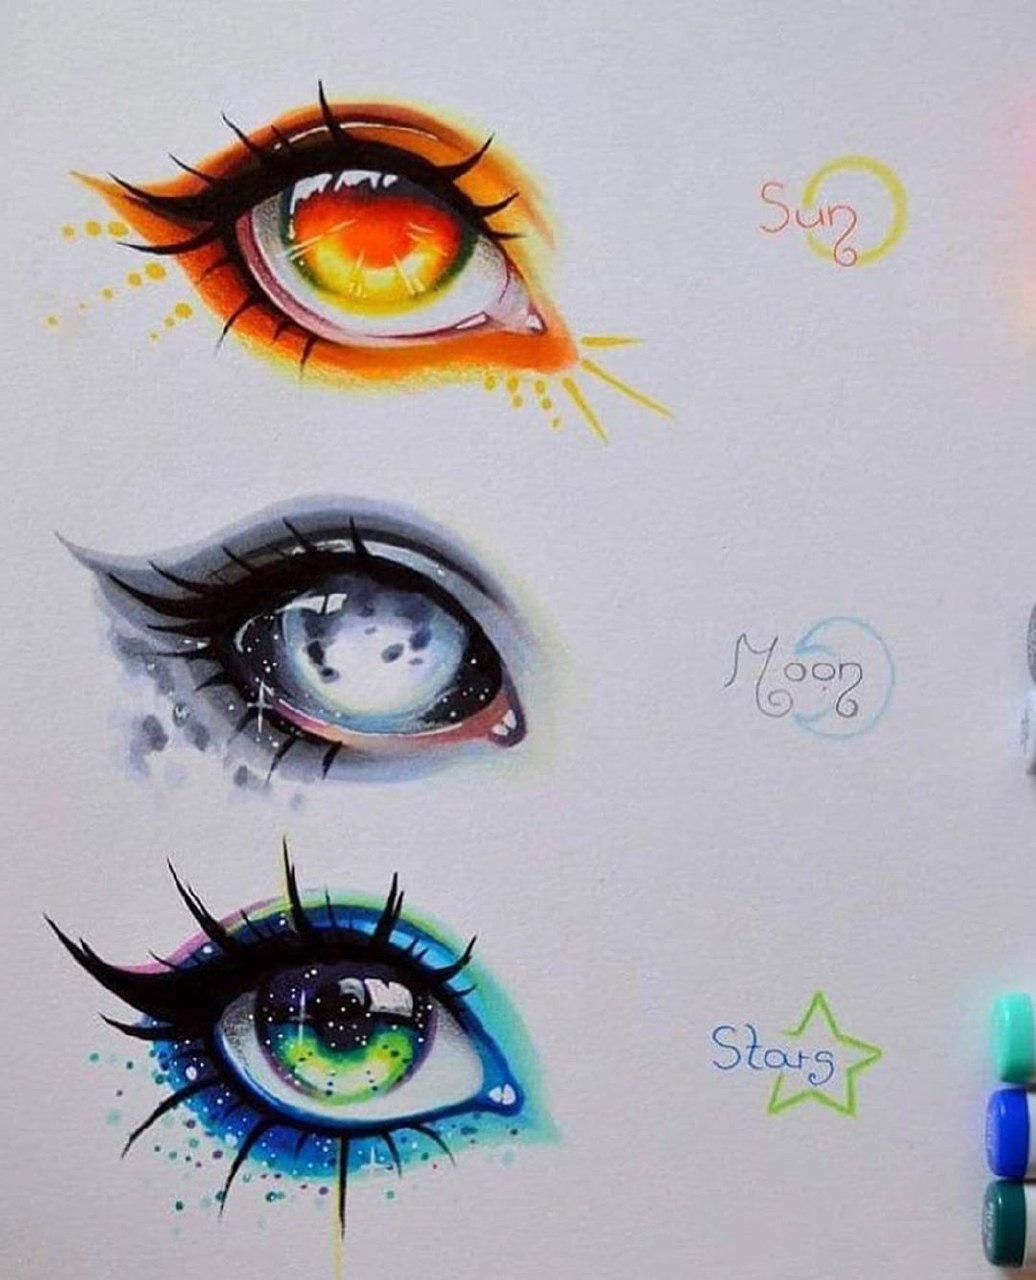 Top Paintings Of The Week 16 Paint Inspirations Graphicroozane In 2020 Anime Eye Drawing Eye Art Cool Art Drawings